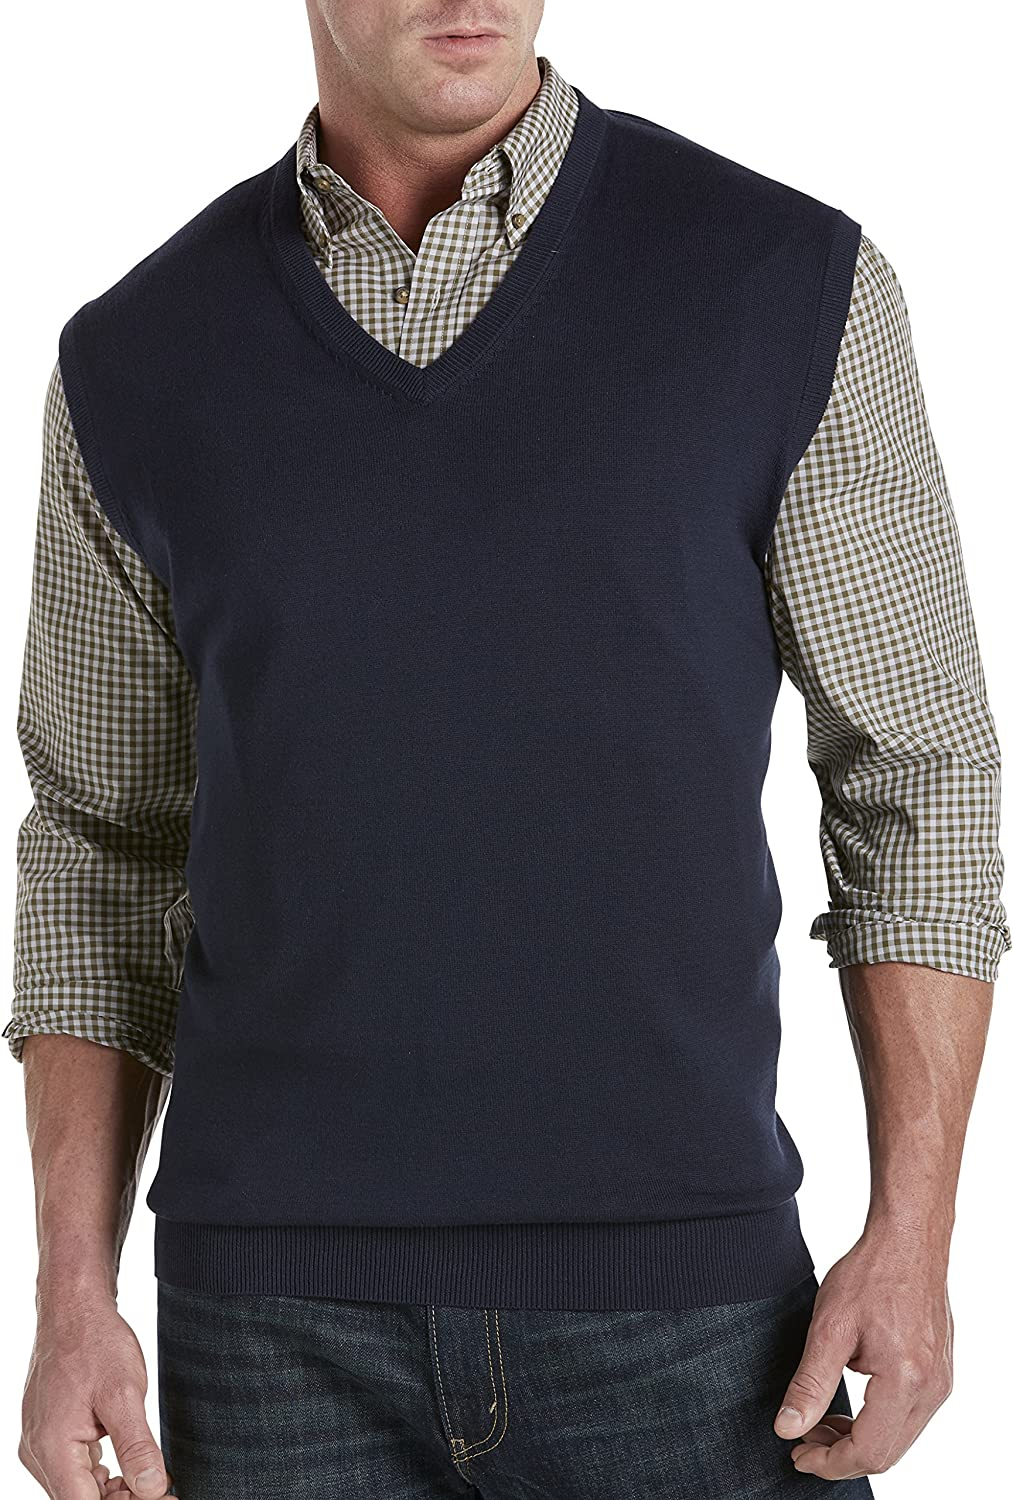 Harbor Kansas City Mall Bay by DXL Big and Tall Max 59% OFF Vest Sweater V-Neck